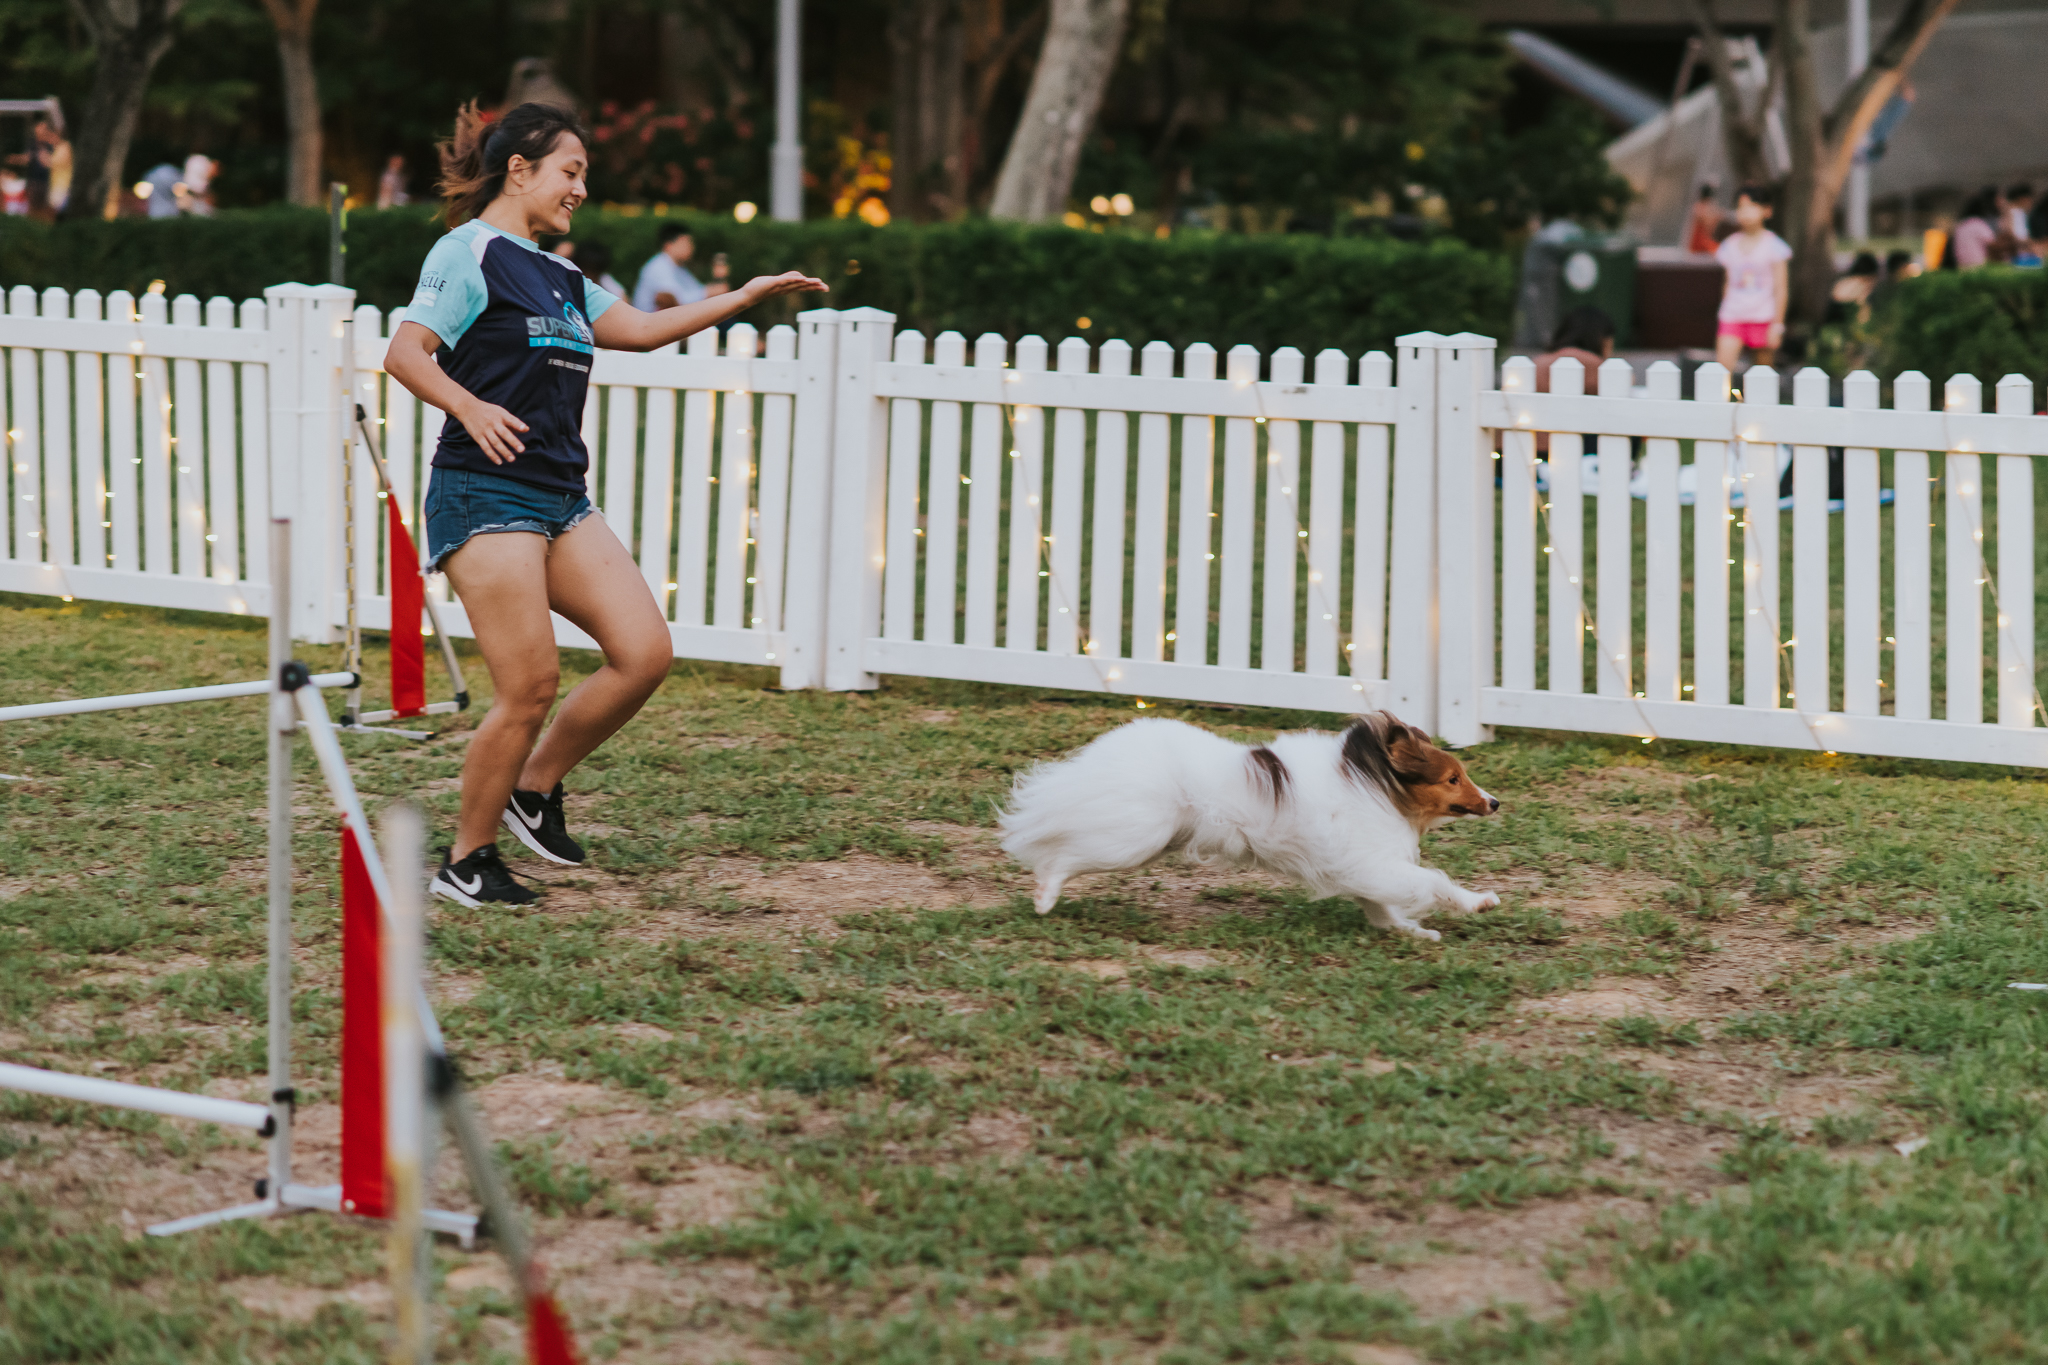 It's a PAW-ty at Connaught Drive, with a line-up of pet activities and competitions throughout the day – including an agility park, obstacle race and a doggy free-run area. Photo courtesy: Urban Redevelopment Authority